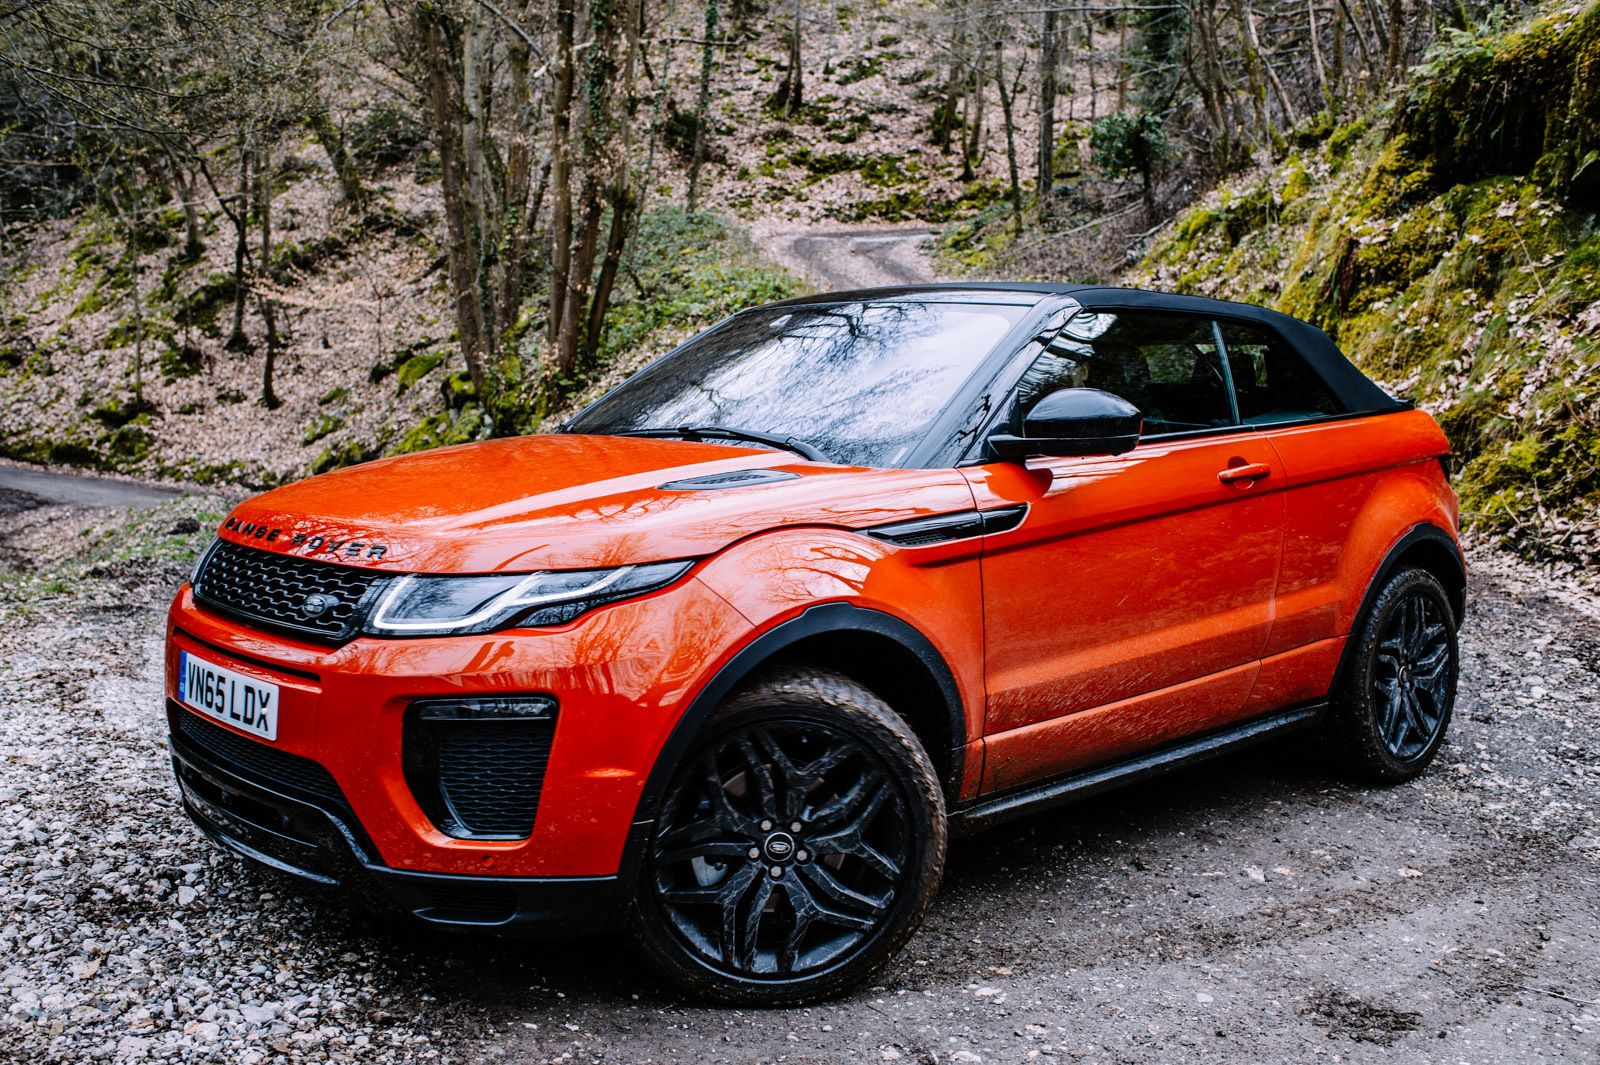 Test Drive The 2017 Range Rover Evoque Convertible